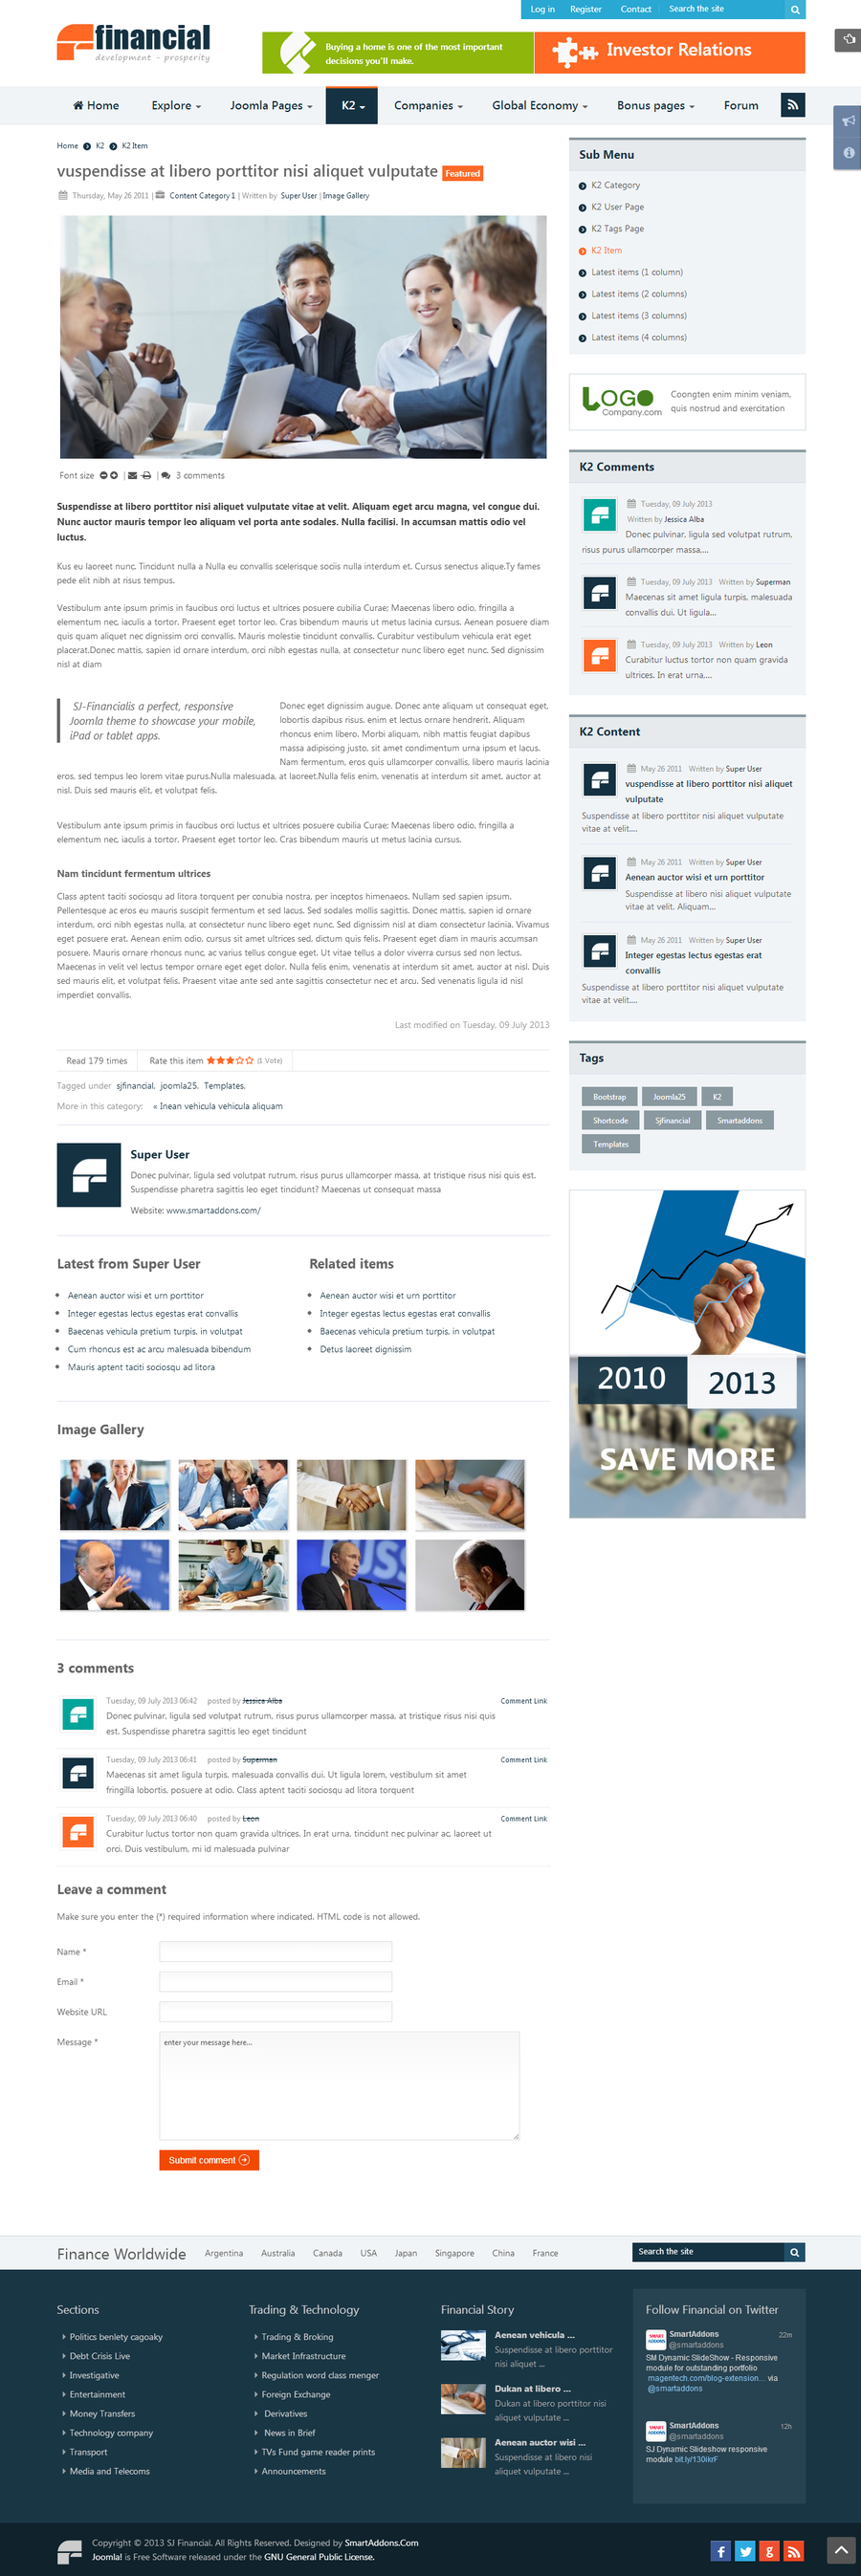 SJ Financial - Responsive Joomla Financial News Template - 07k2colums.jpg